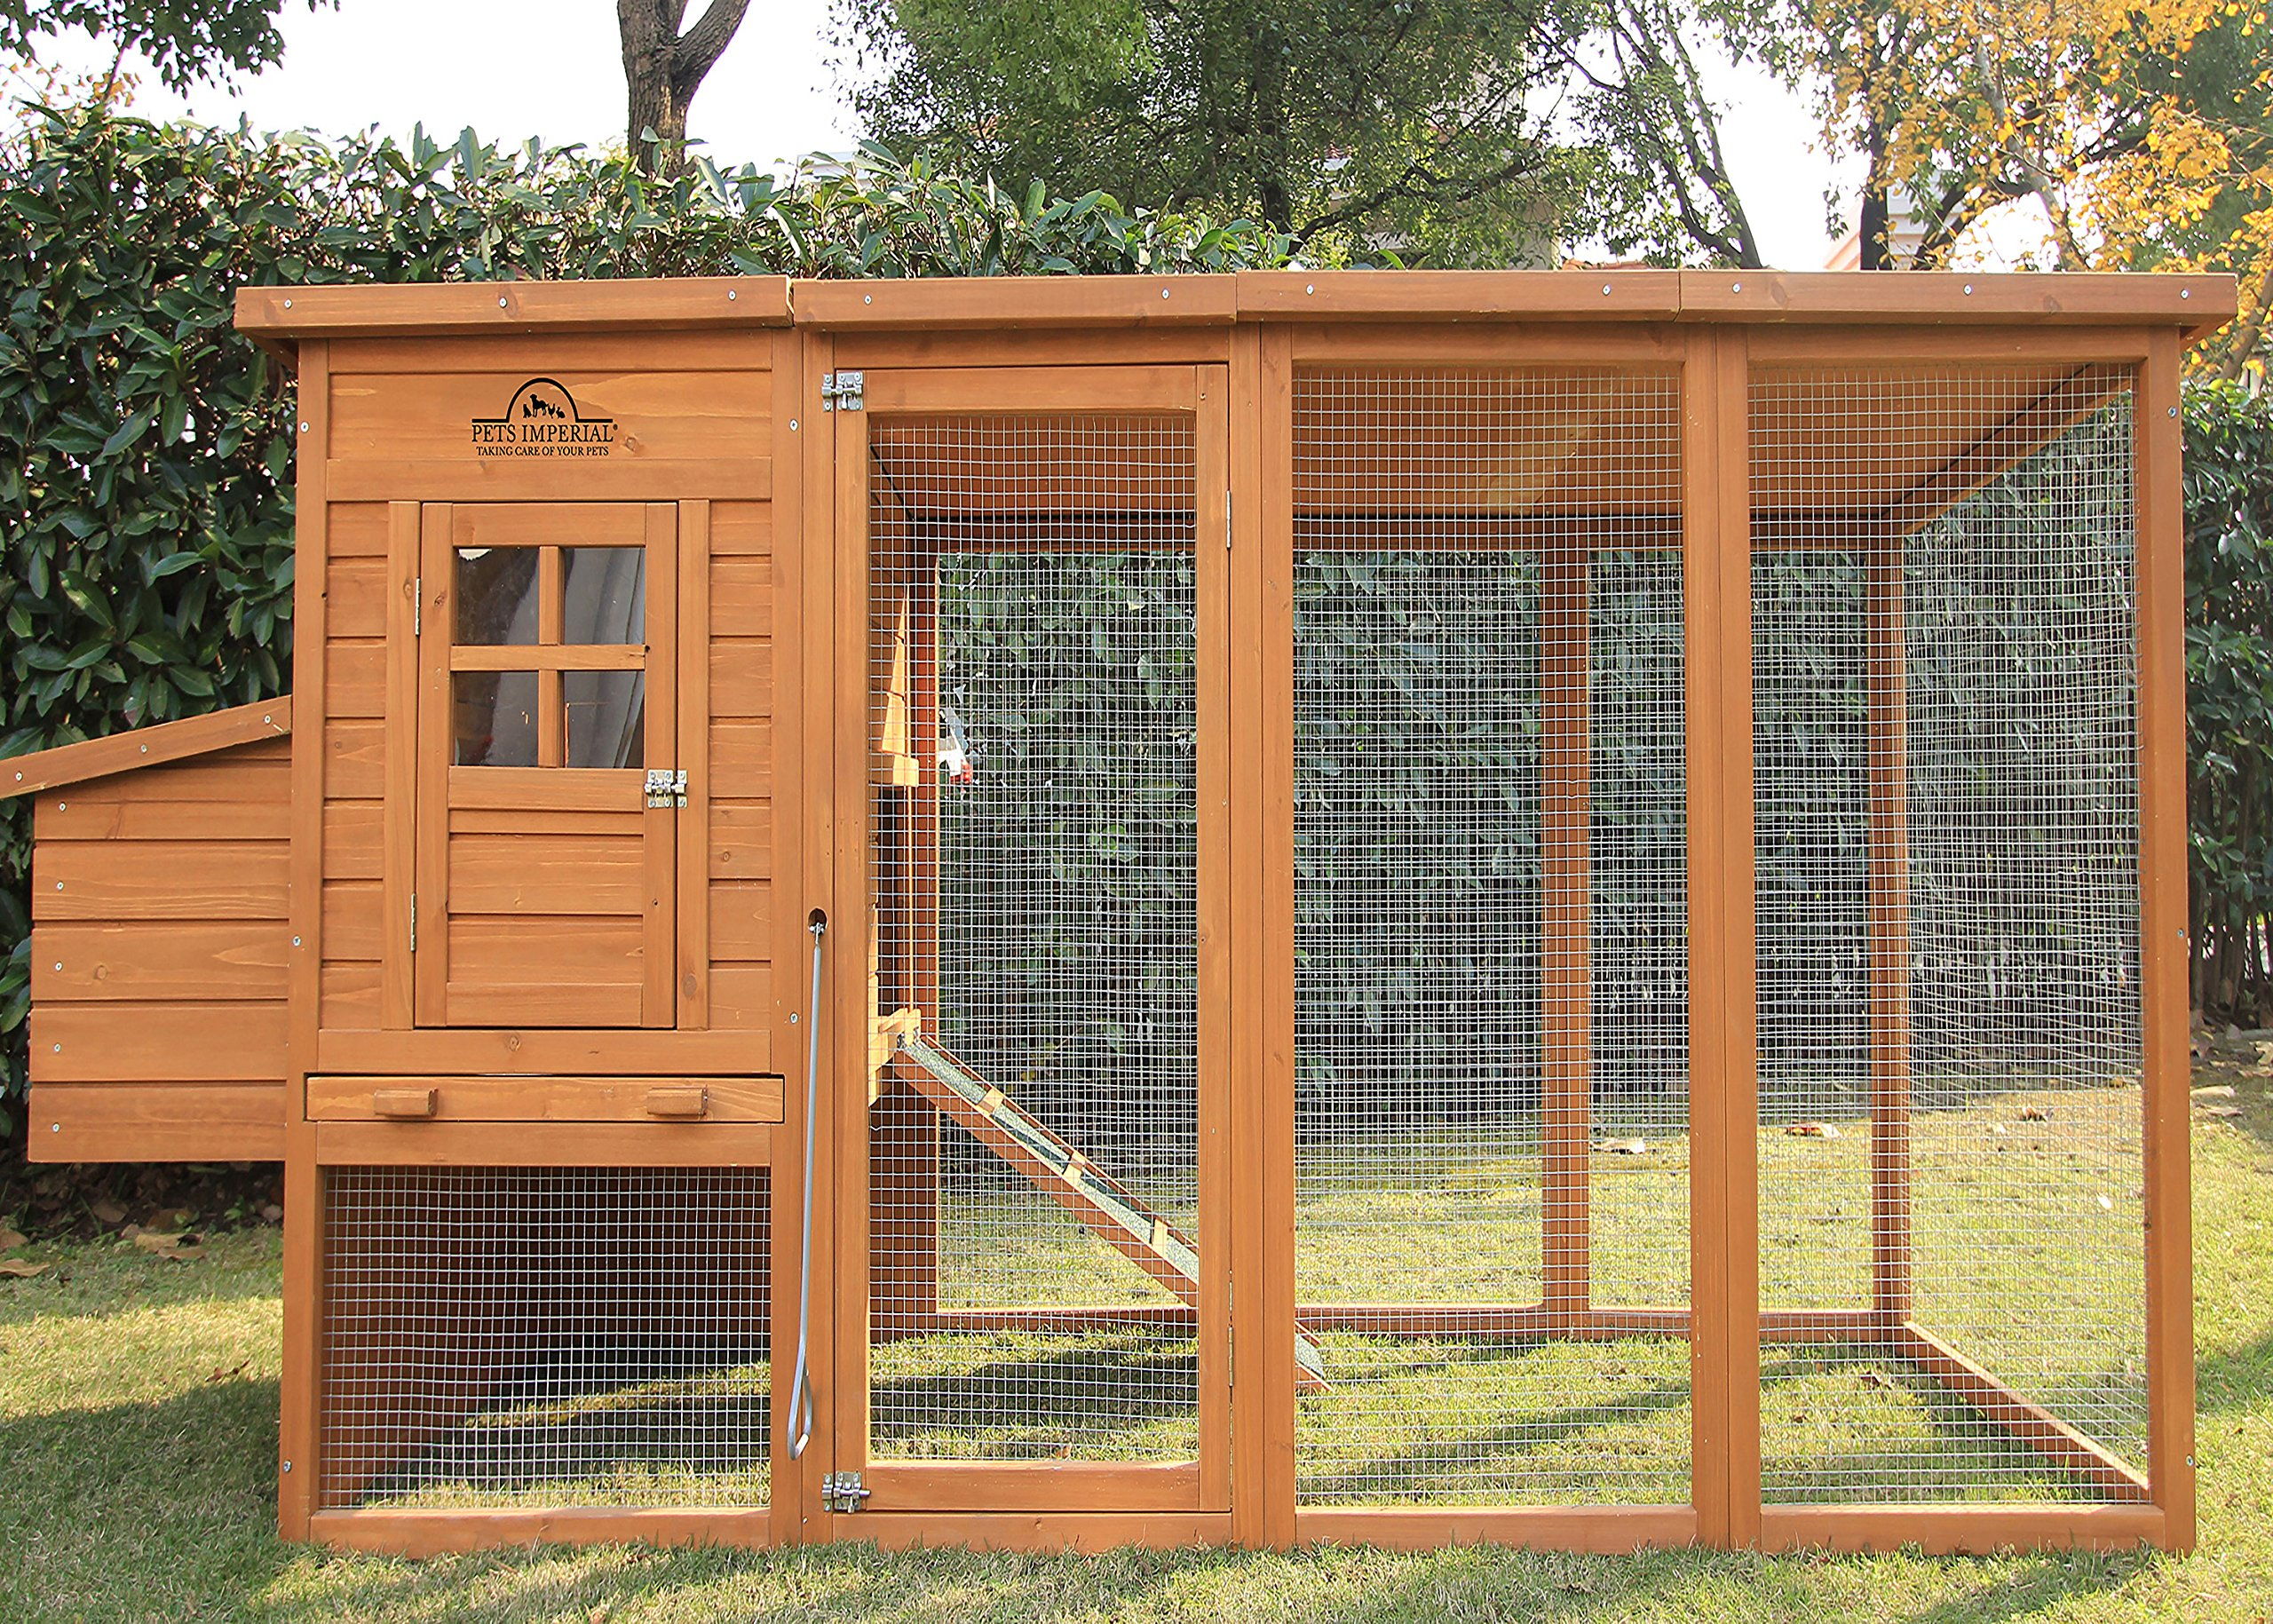 Pets Imperial Arlington Chicken Coop With Extra Long Run 8ft 2'' & Asphalt Roof Suitable For 4/6 Birds Depending On Size